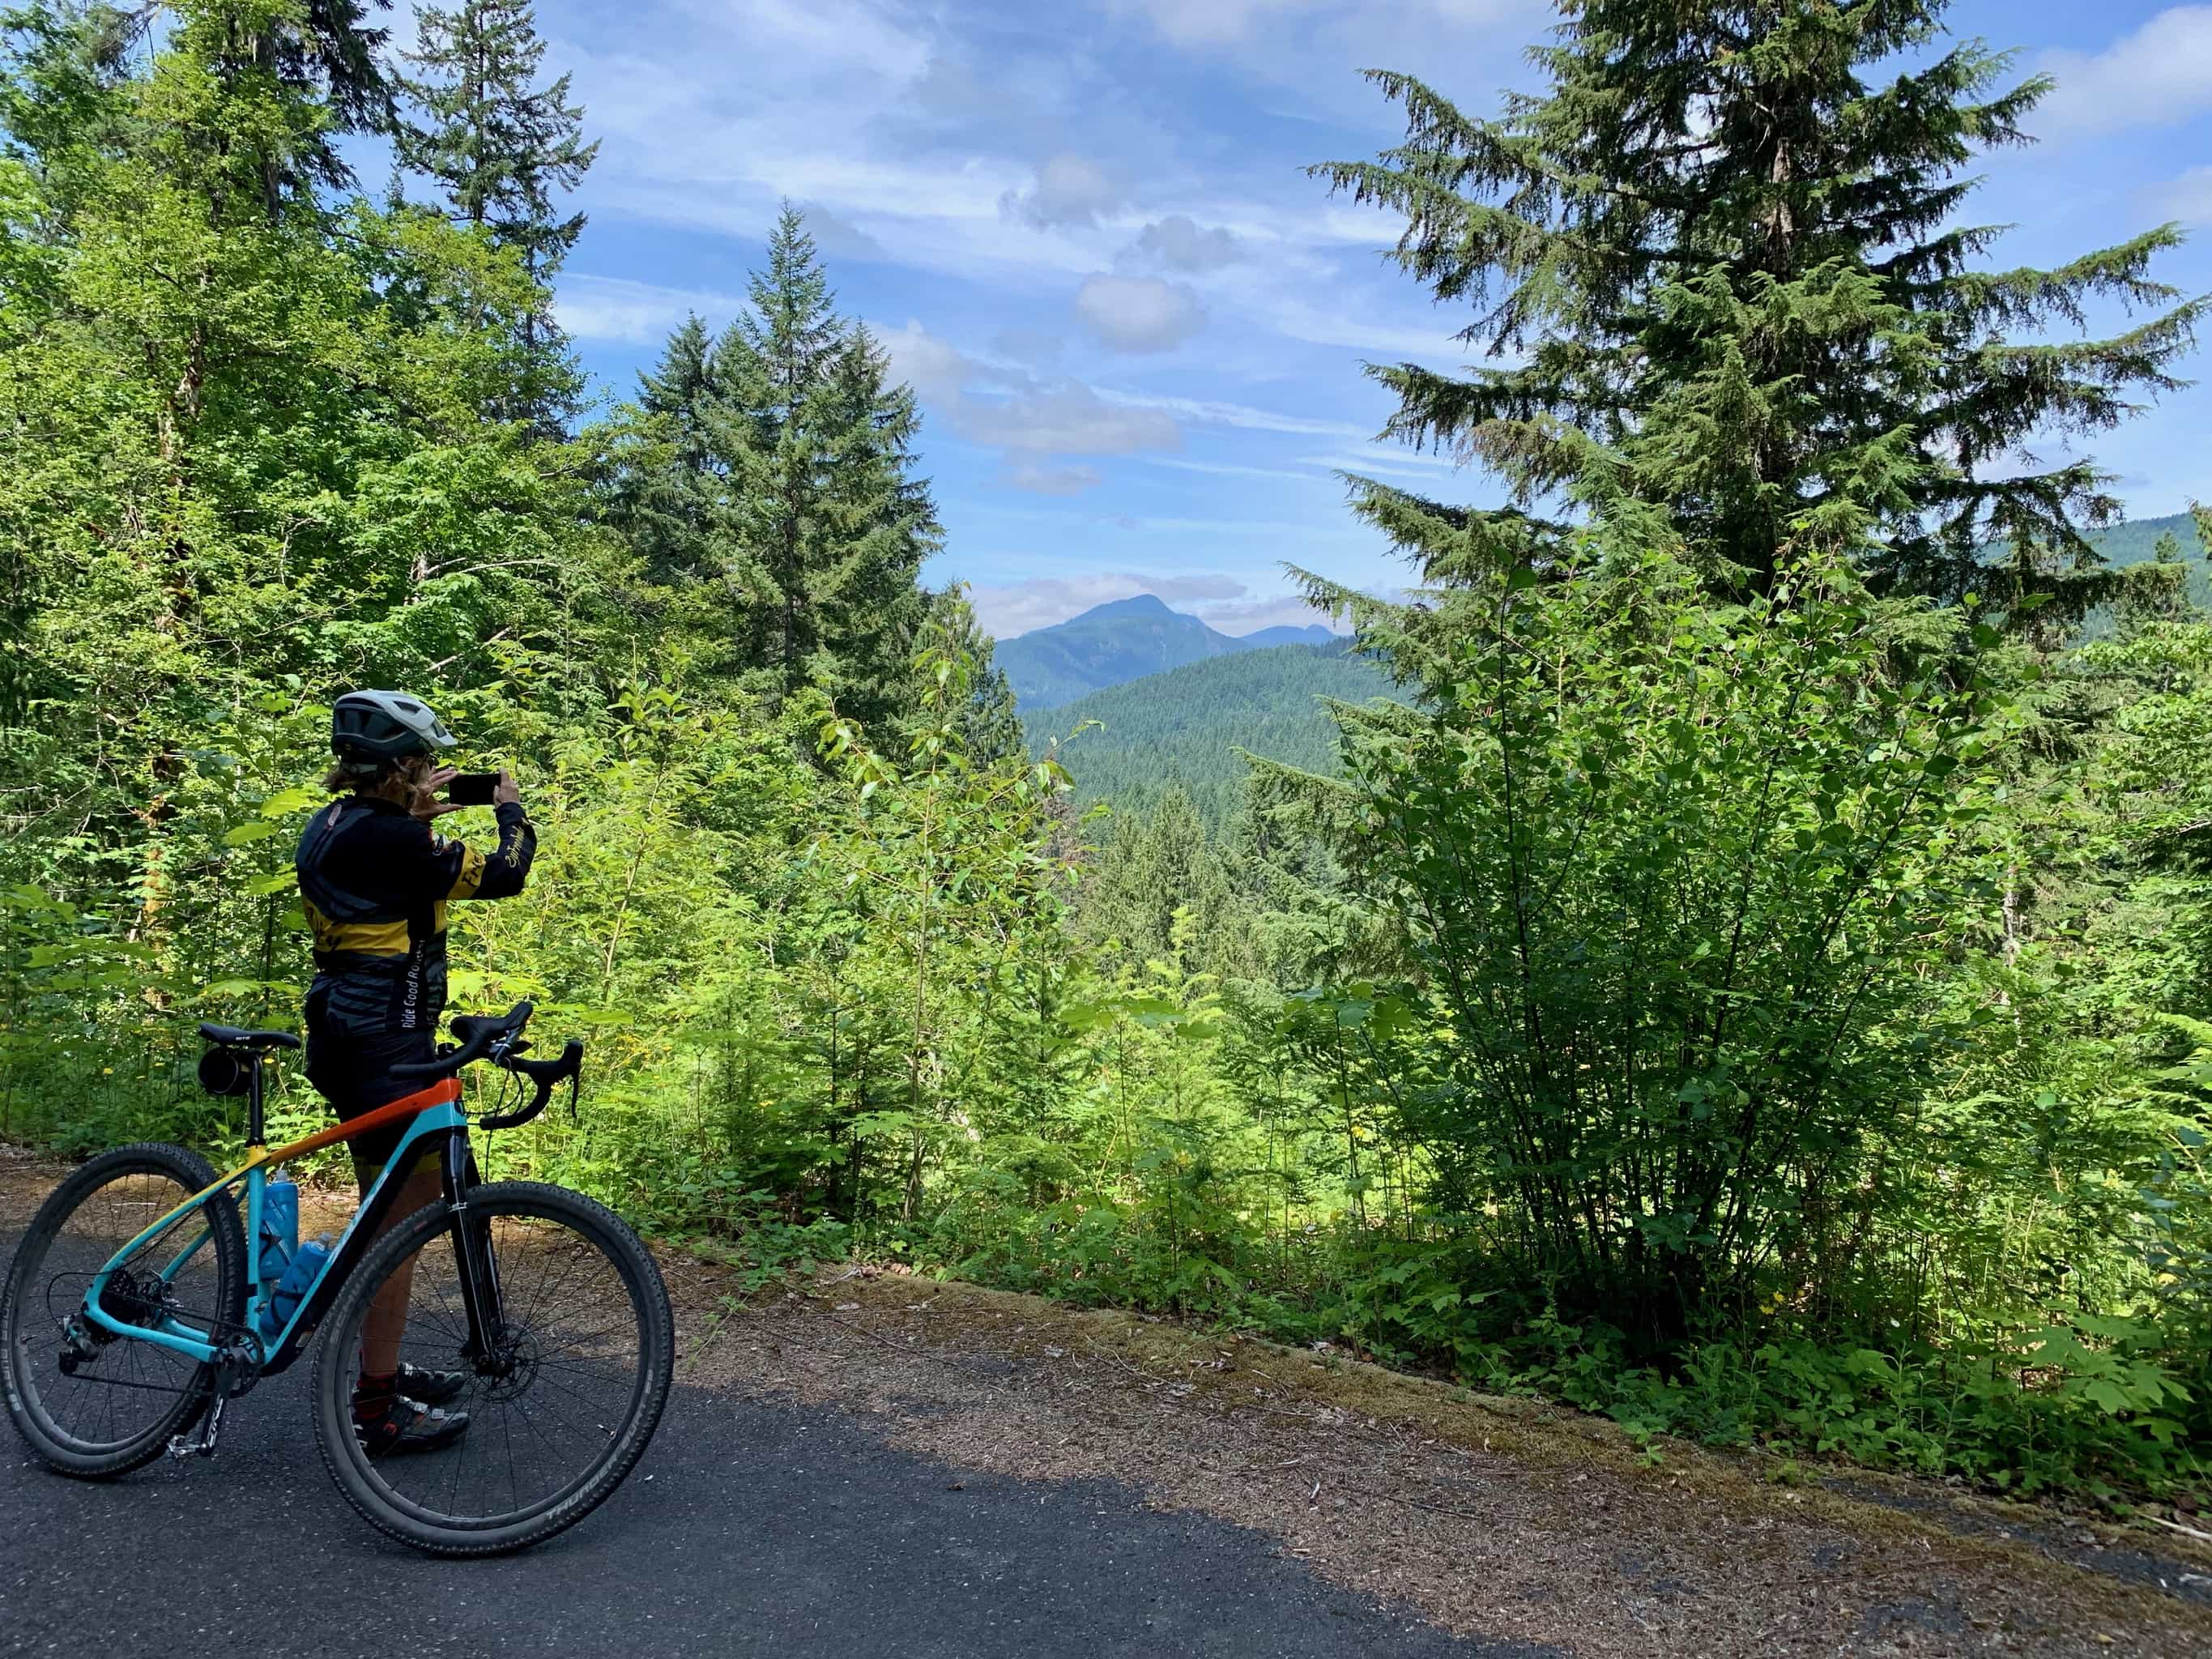 Views of the mountains in the Gifford Pinchot National Forest from Carson Guler road / NF-65.